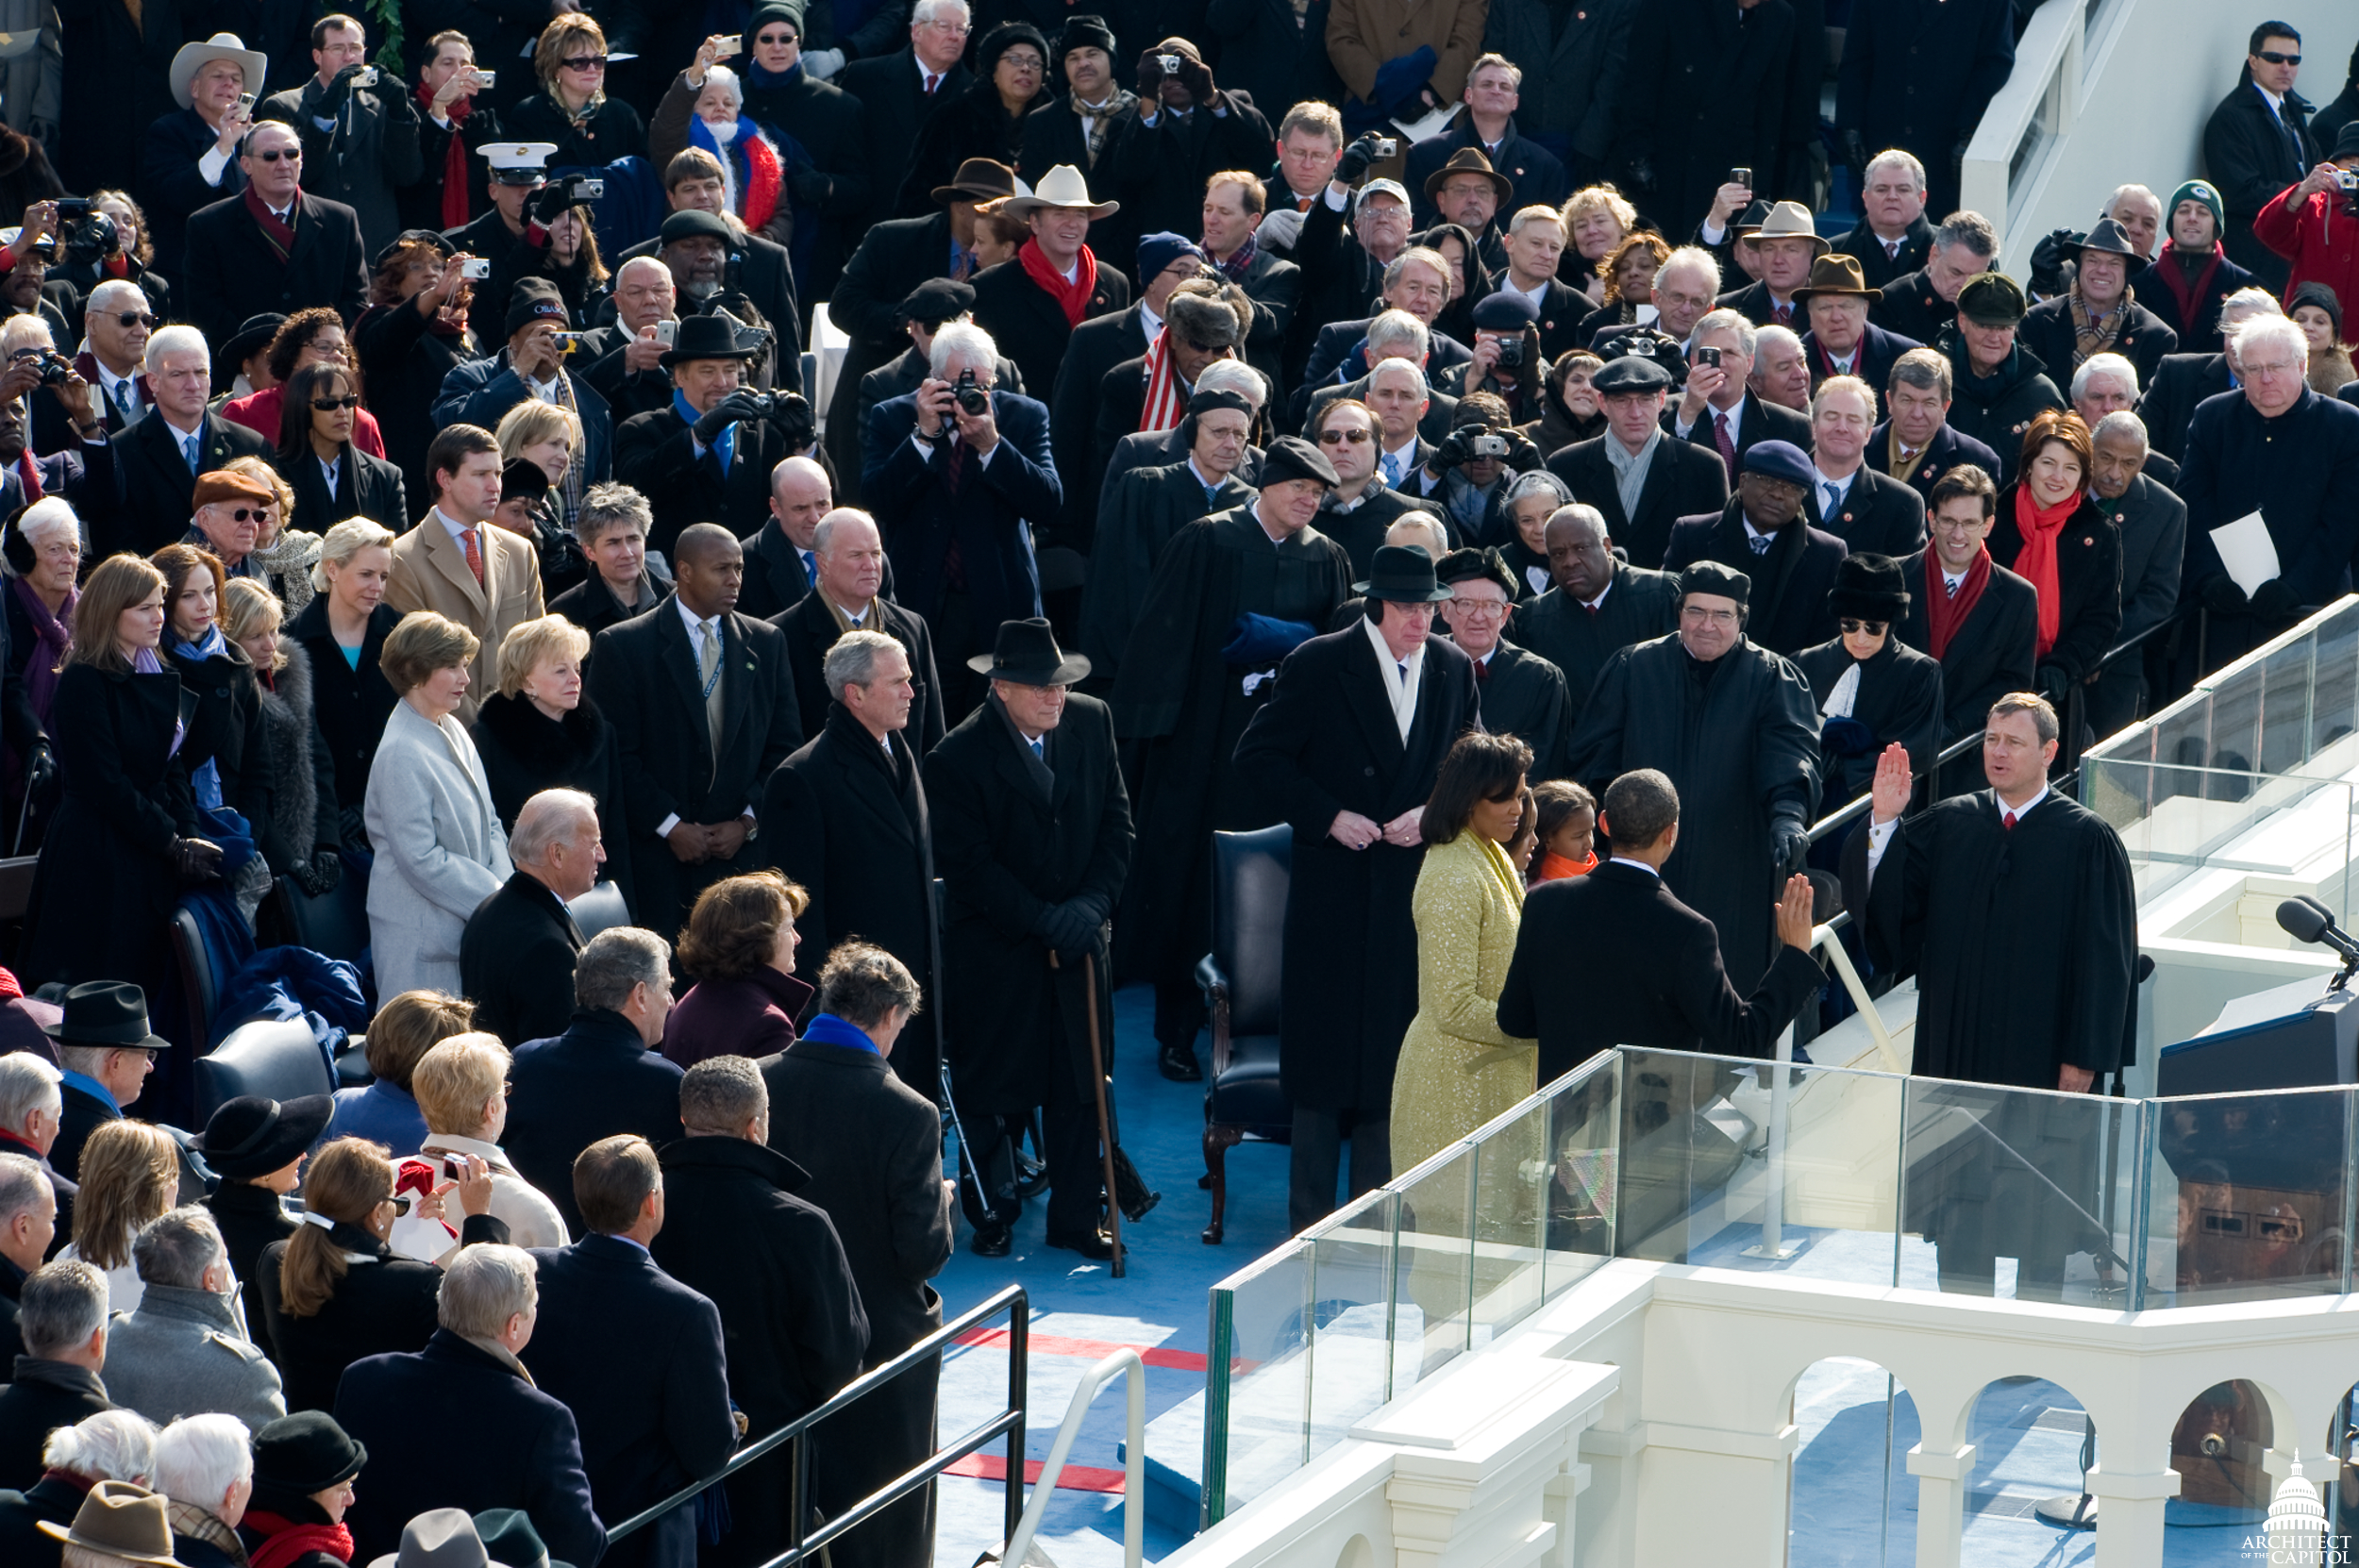 President Barack Obama takes the oath in 2009.